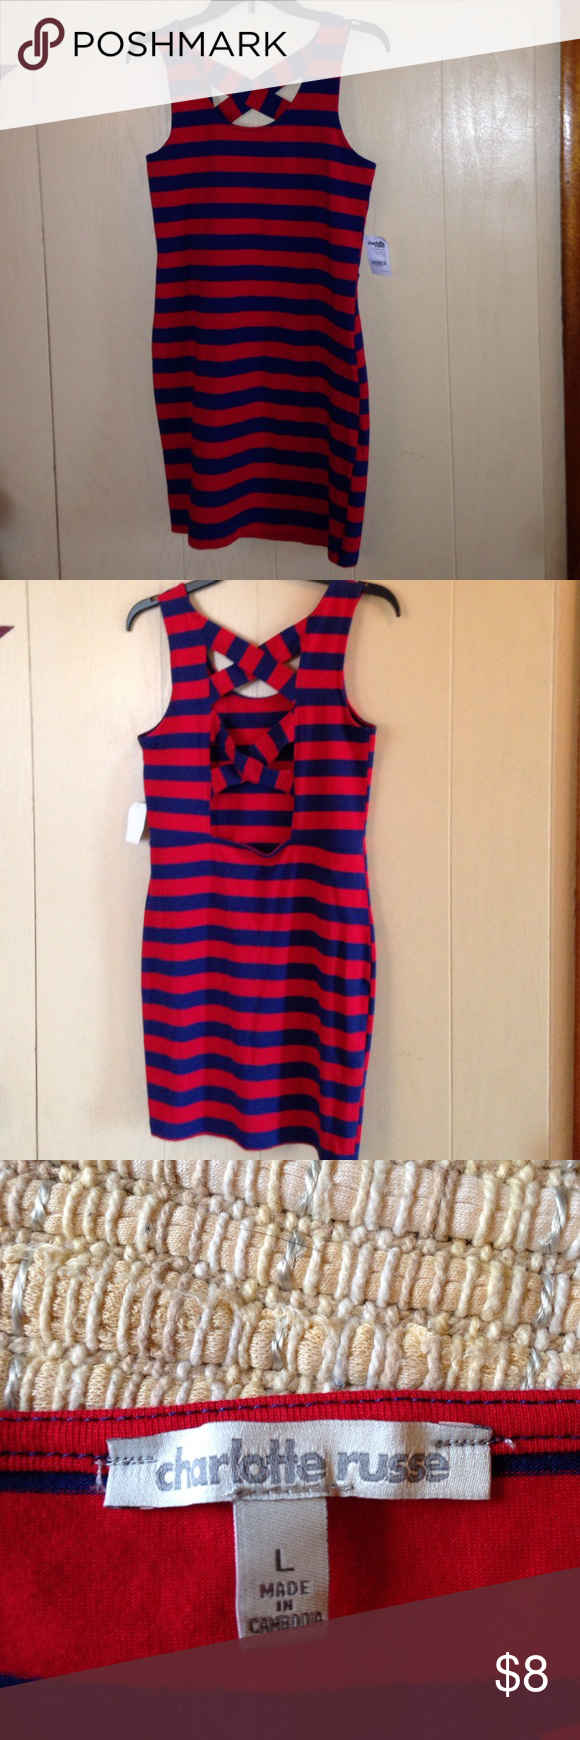 Charlotte Russe mini dress/ long summer shirt😊 Super cute item, NWT, is unfortunately too small for me😕, 95% cotton, 5% spandex so there's some stretch in it! Charlotte Russe Dresses Mini